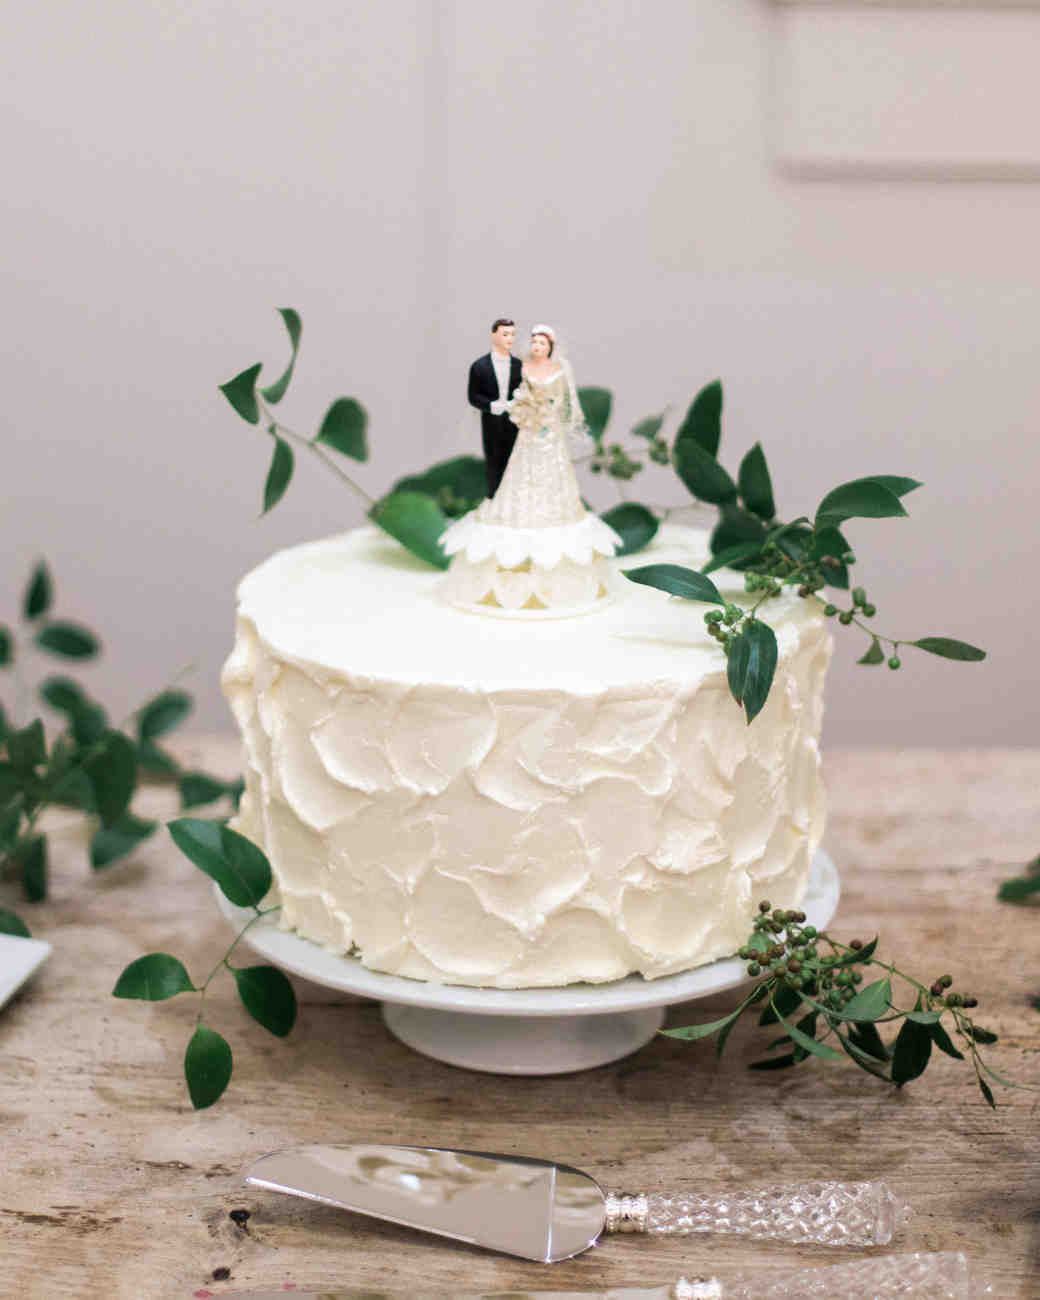 52 Small Wedding Cakes with a Big Presence | Martha Stewart Weddings